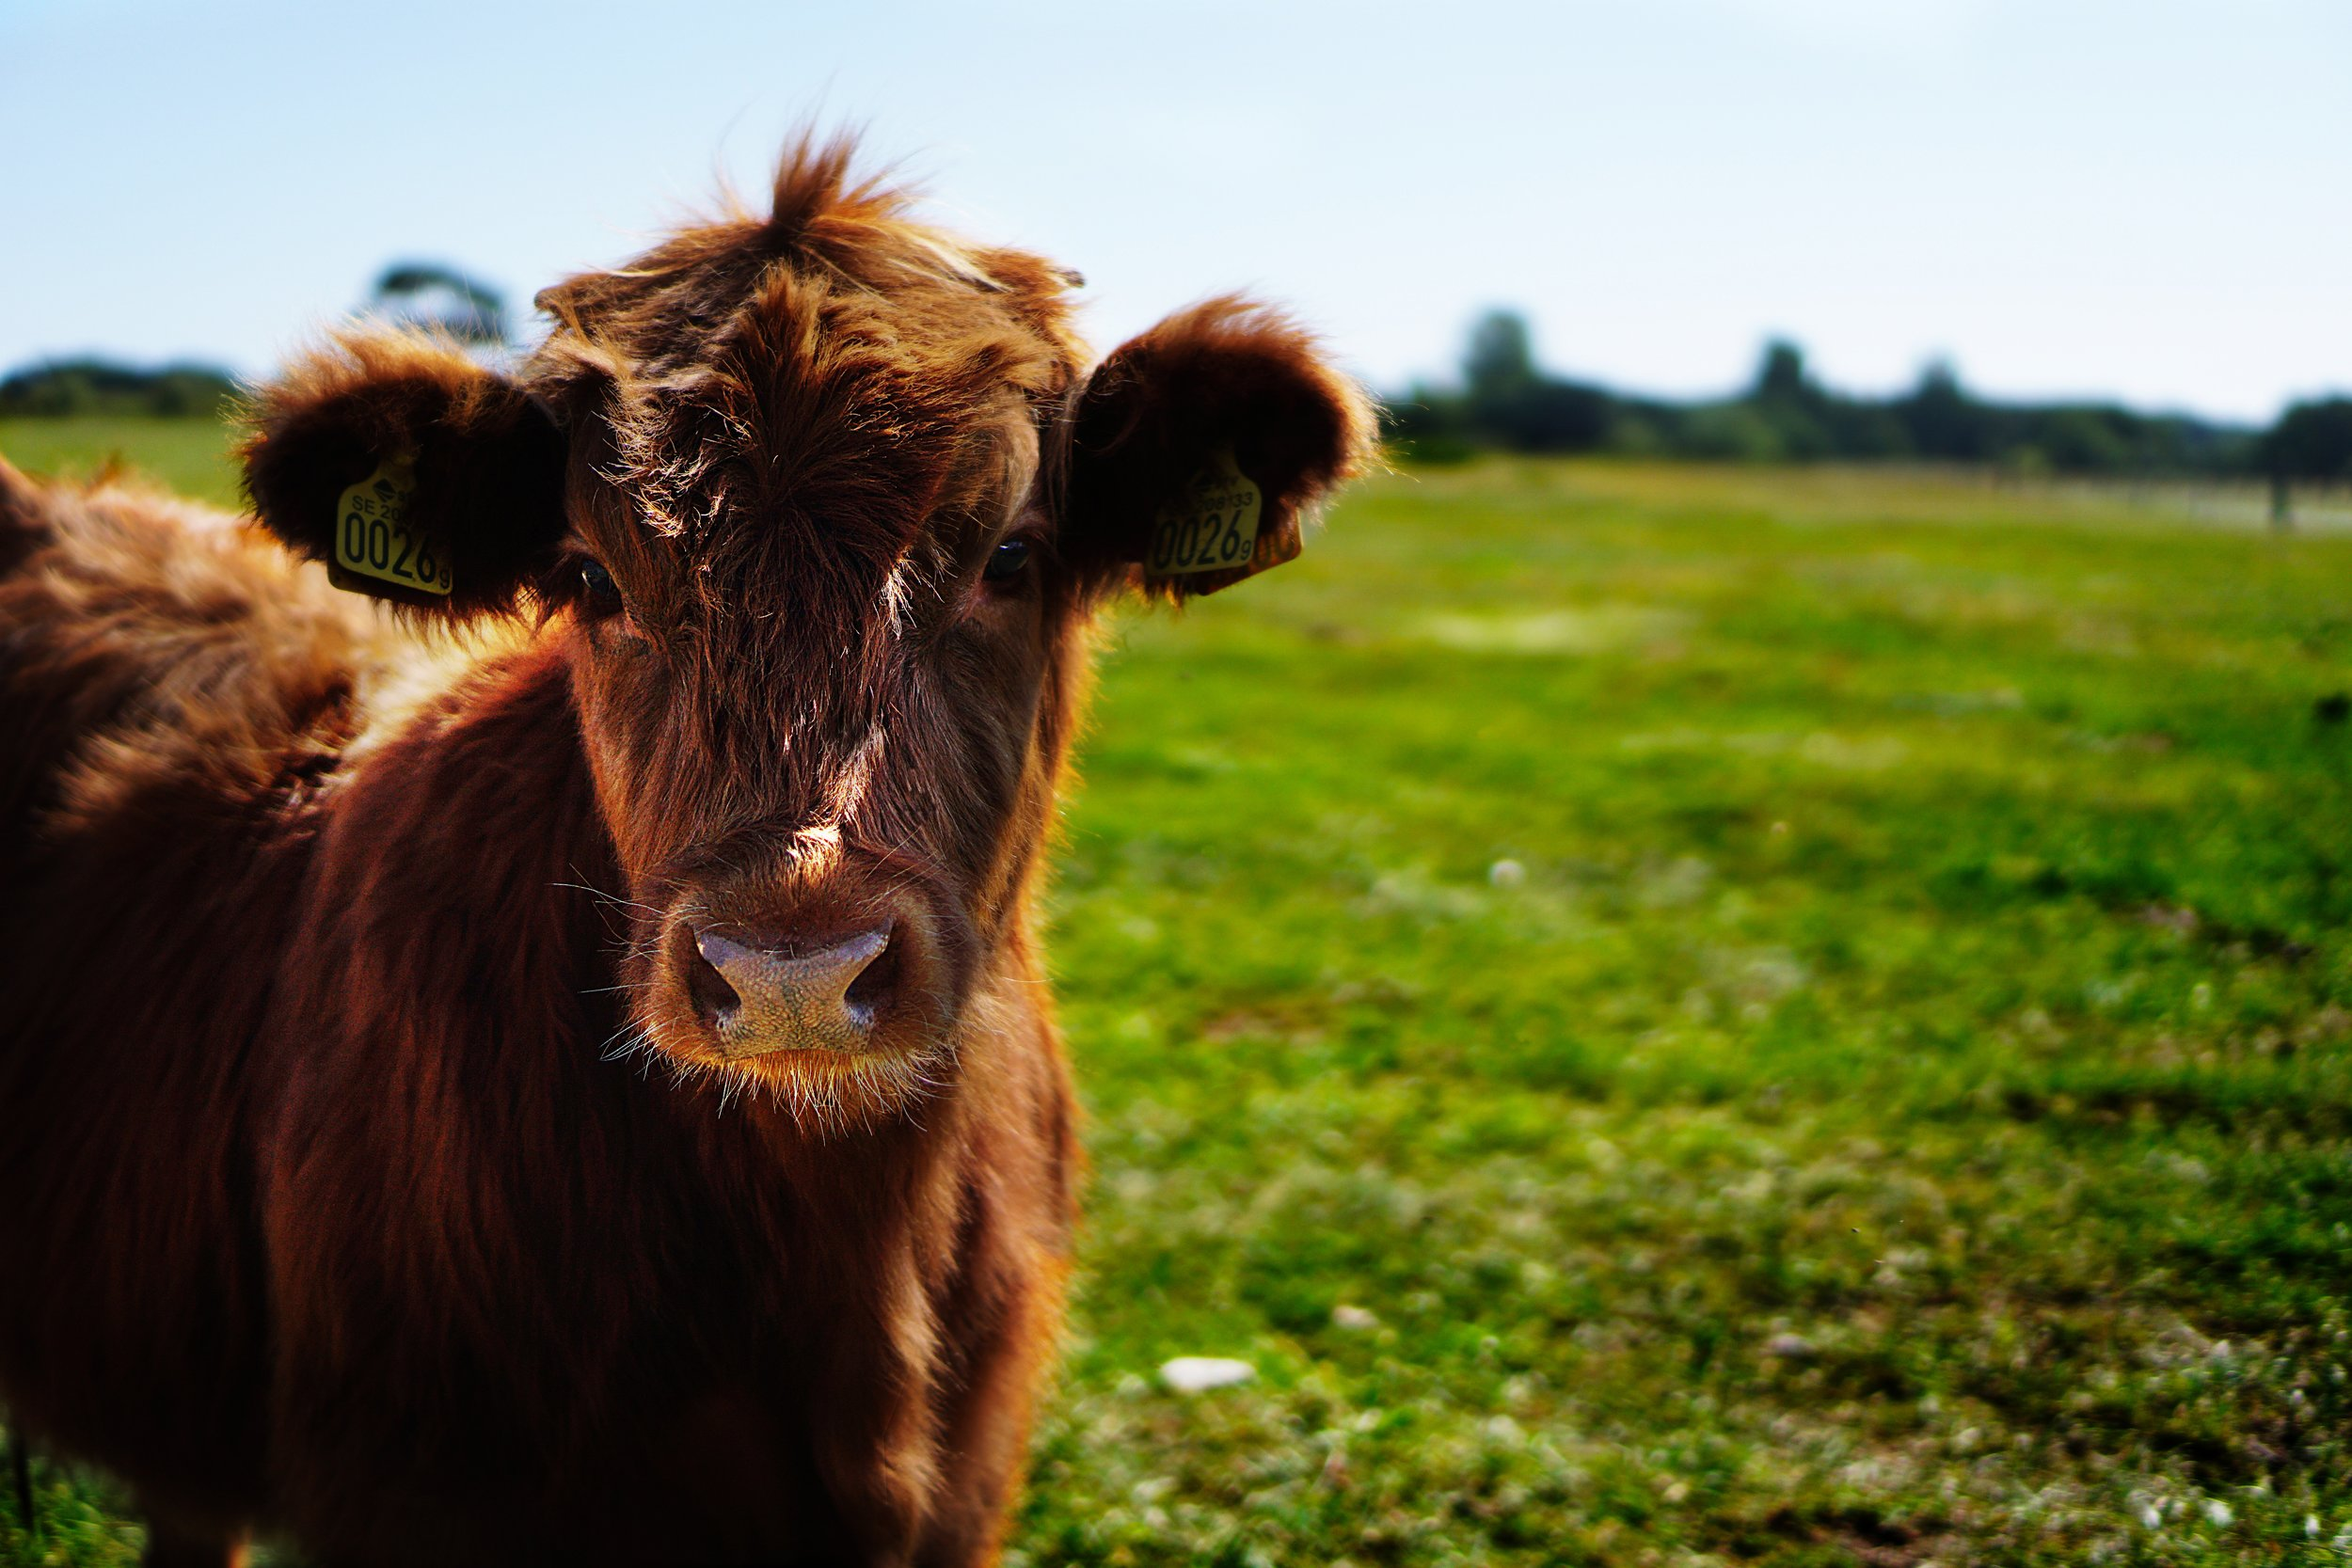 The more almonds we milk, the less we need to use cows for their milk!